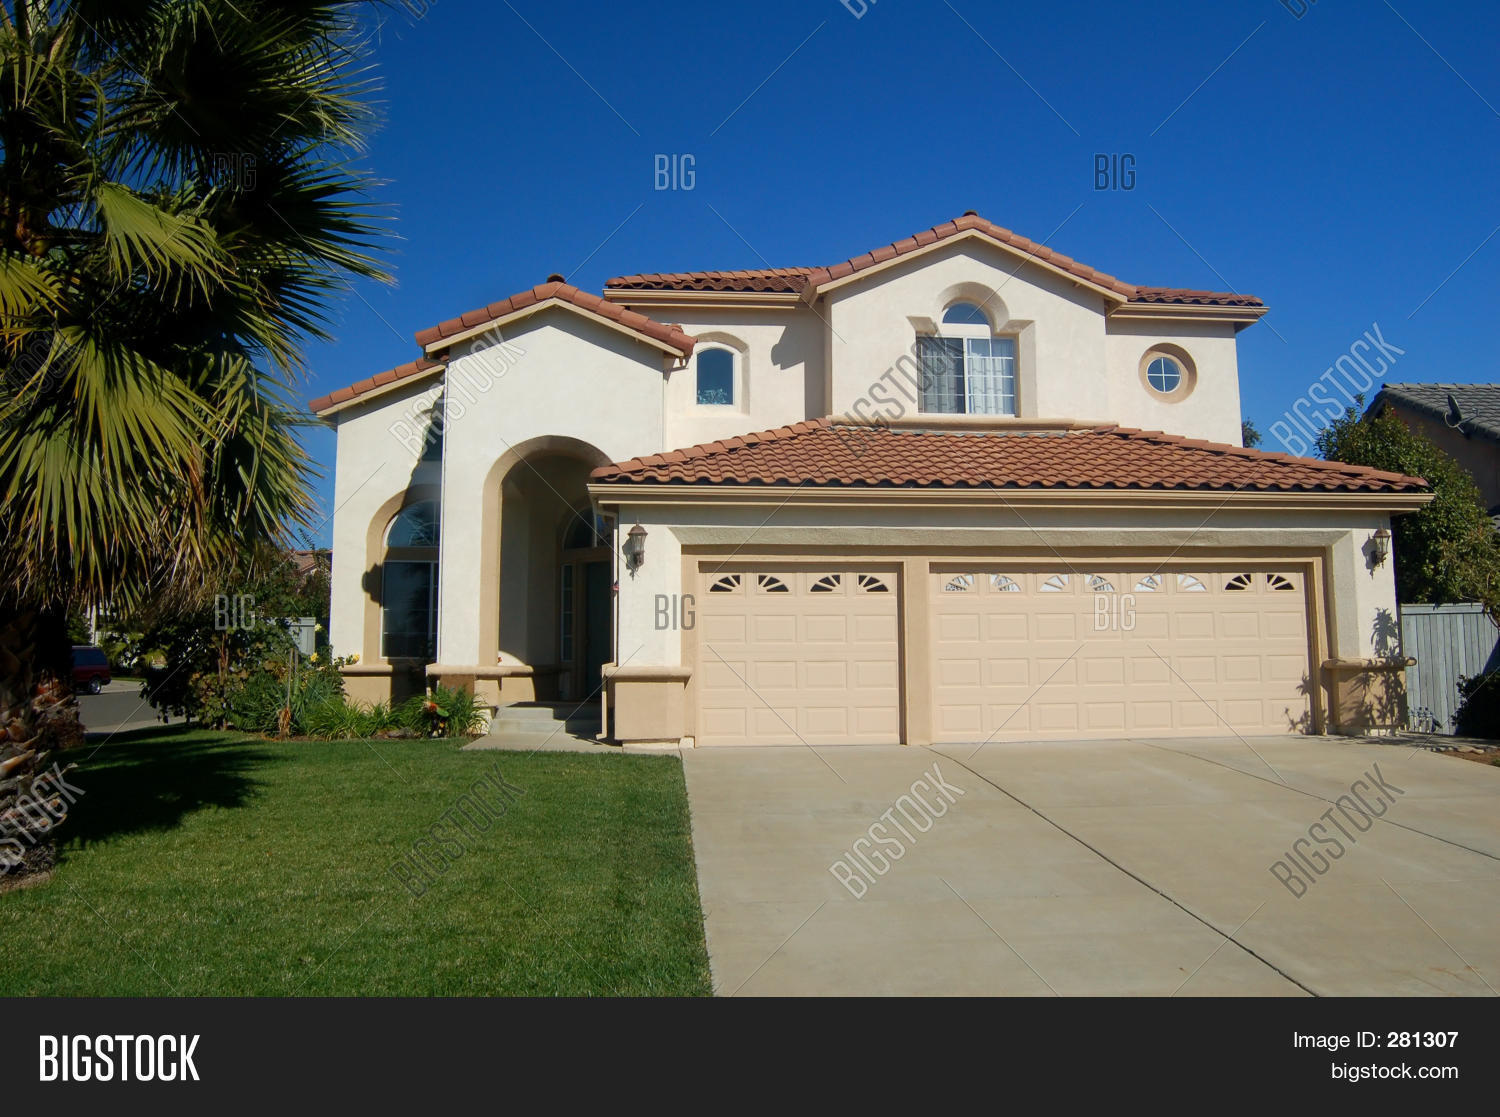 Nice house california image photo bigstock for Nice house photo